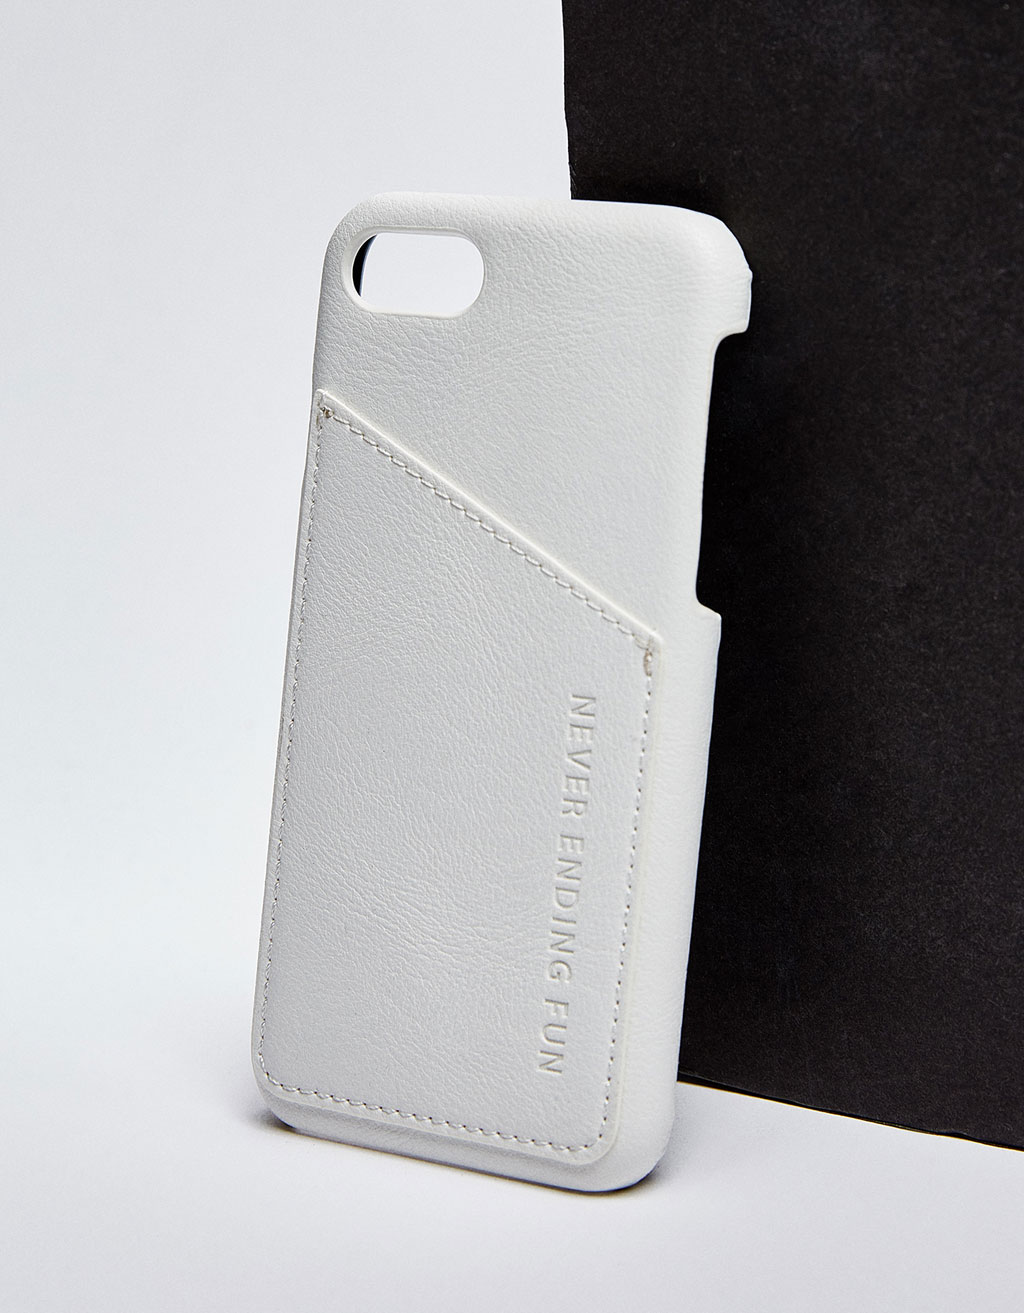 iPhone 7 phone sleeve